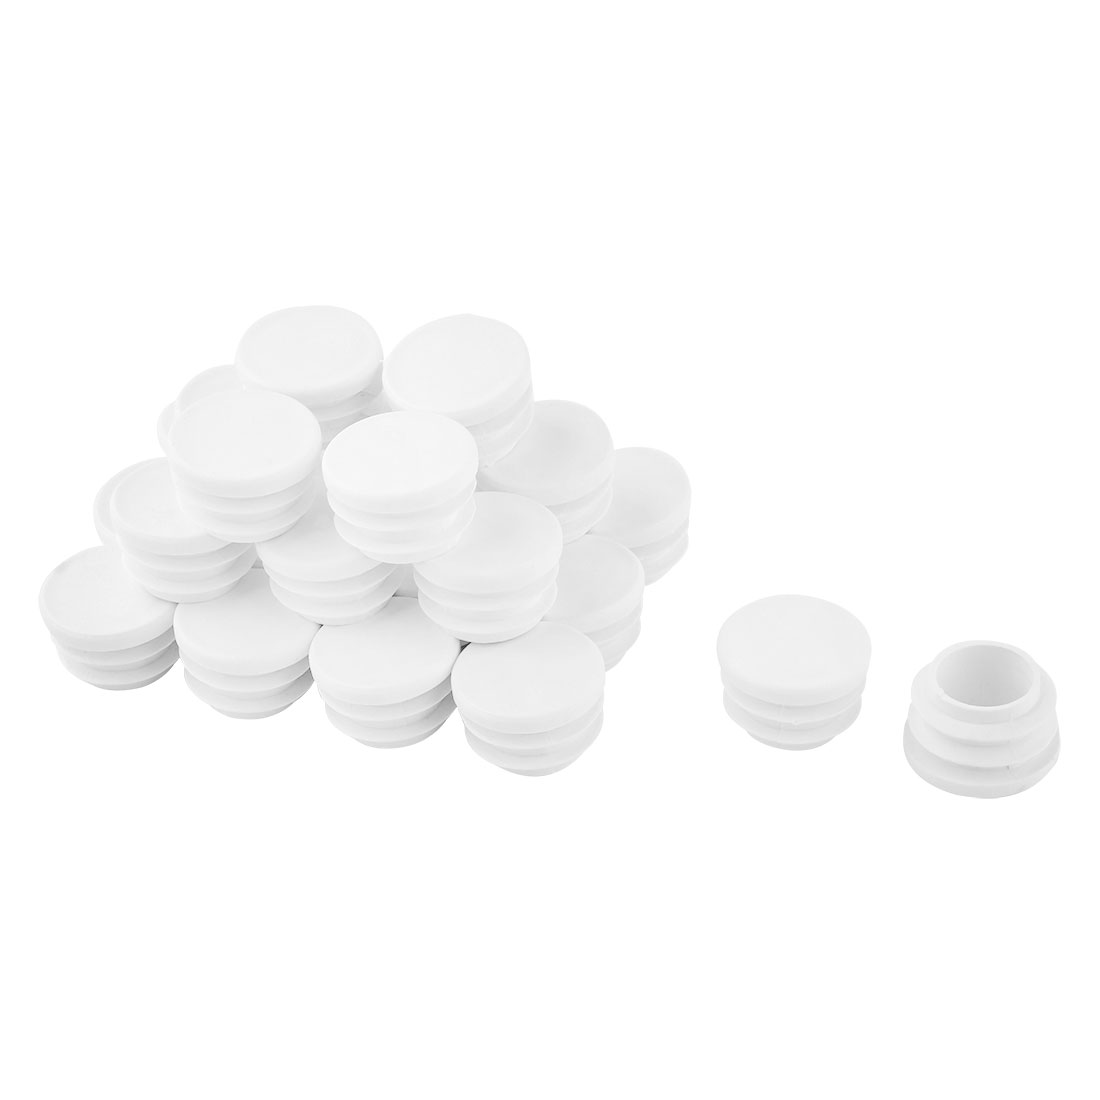 "24 Pcs White Plastic 7/8"" Diameter Round Tubing Tube Insert Caps Covers"